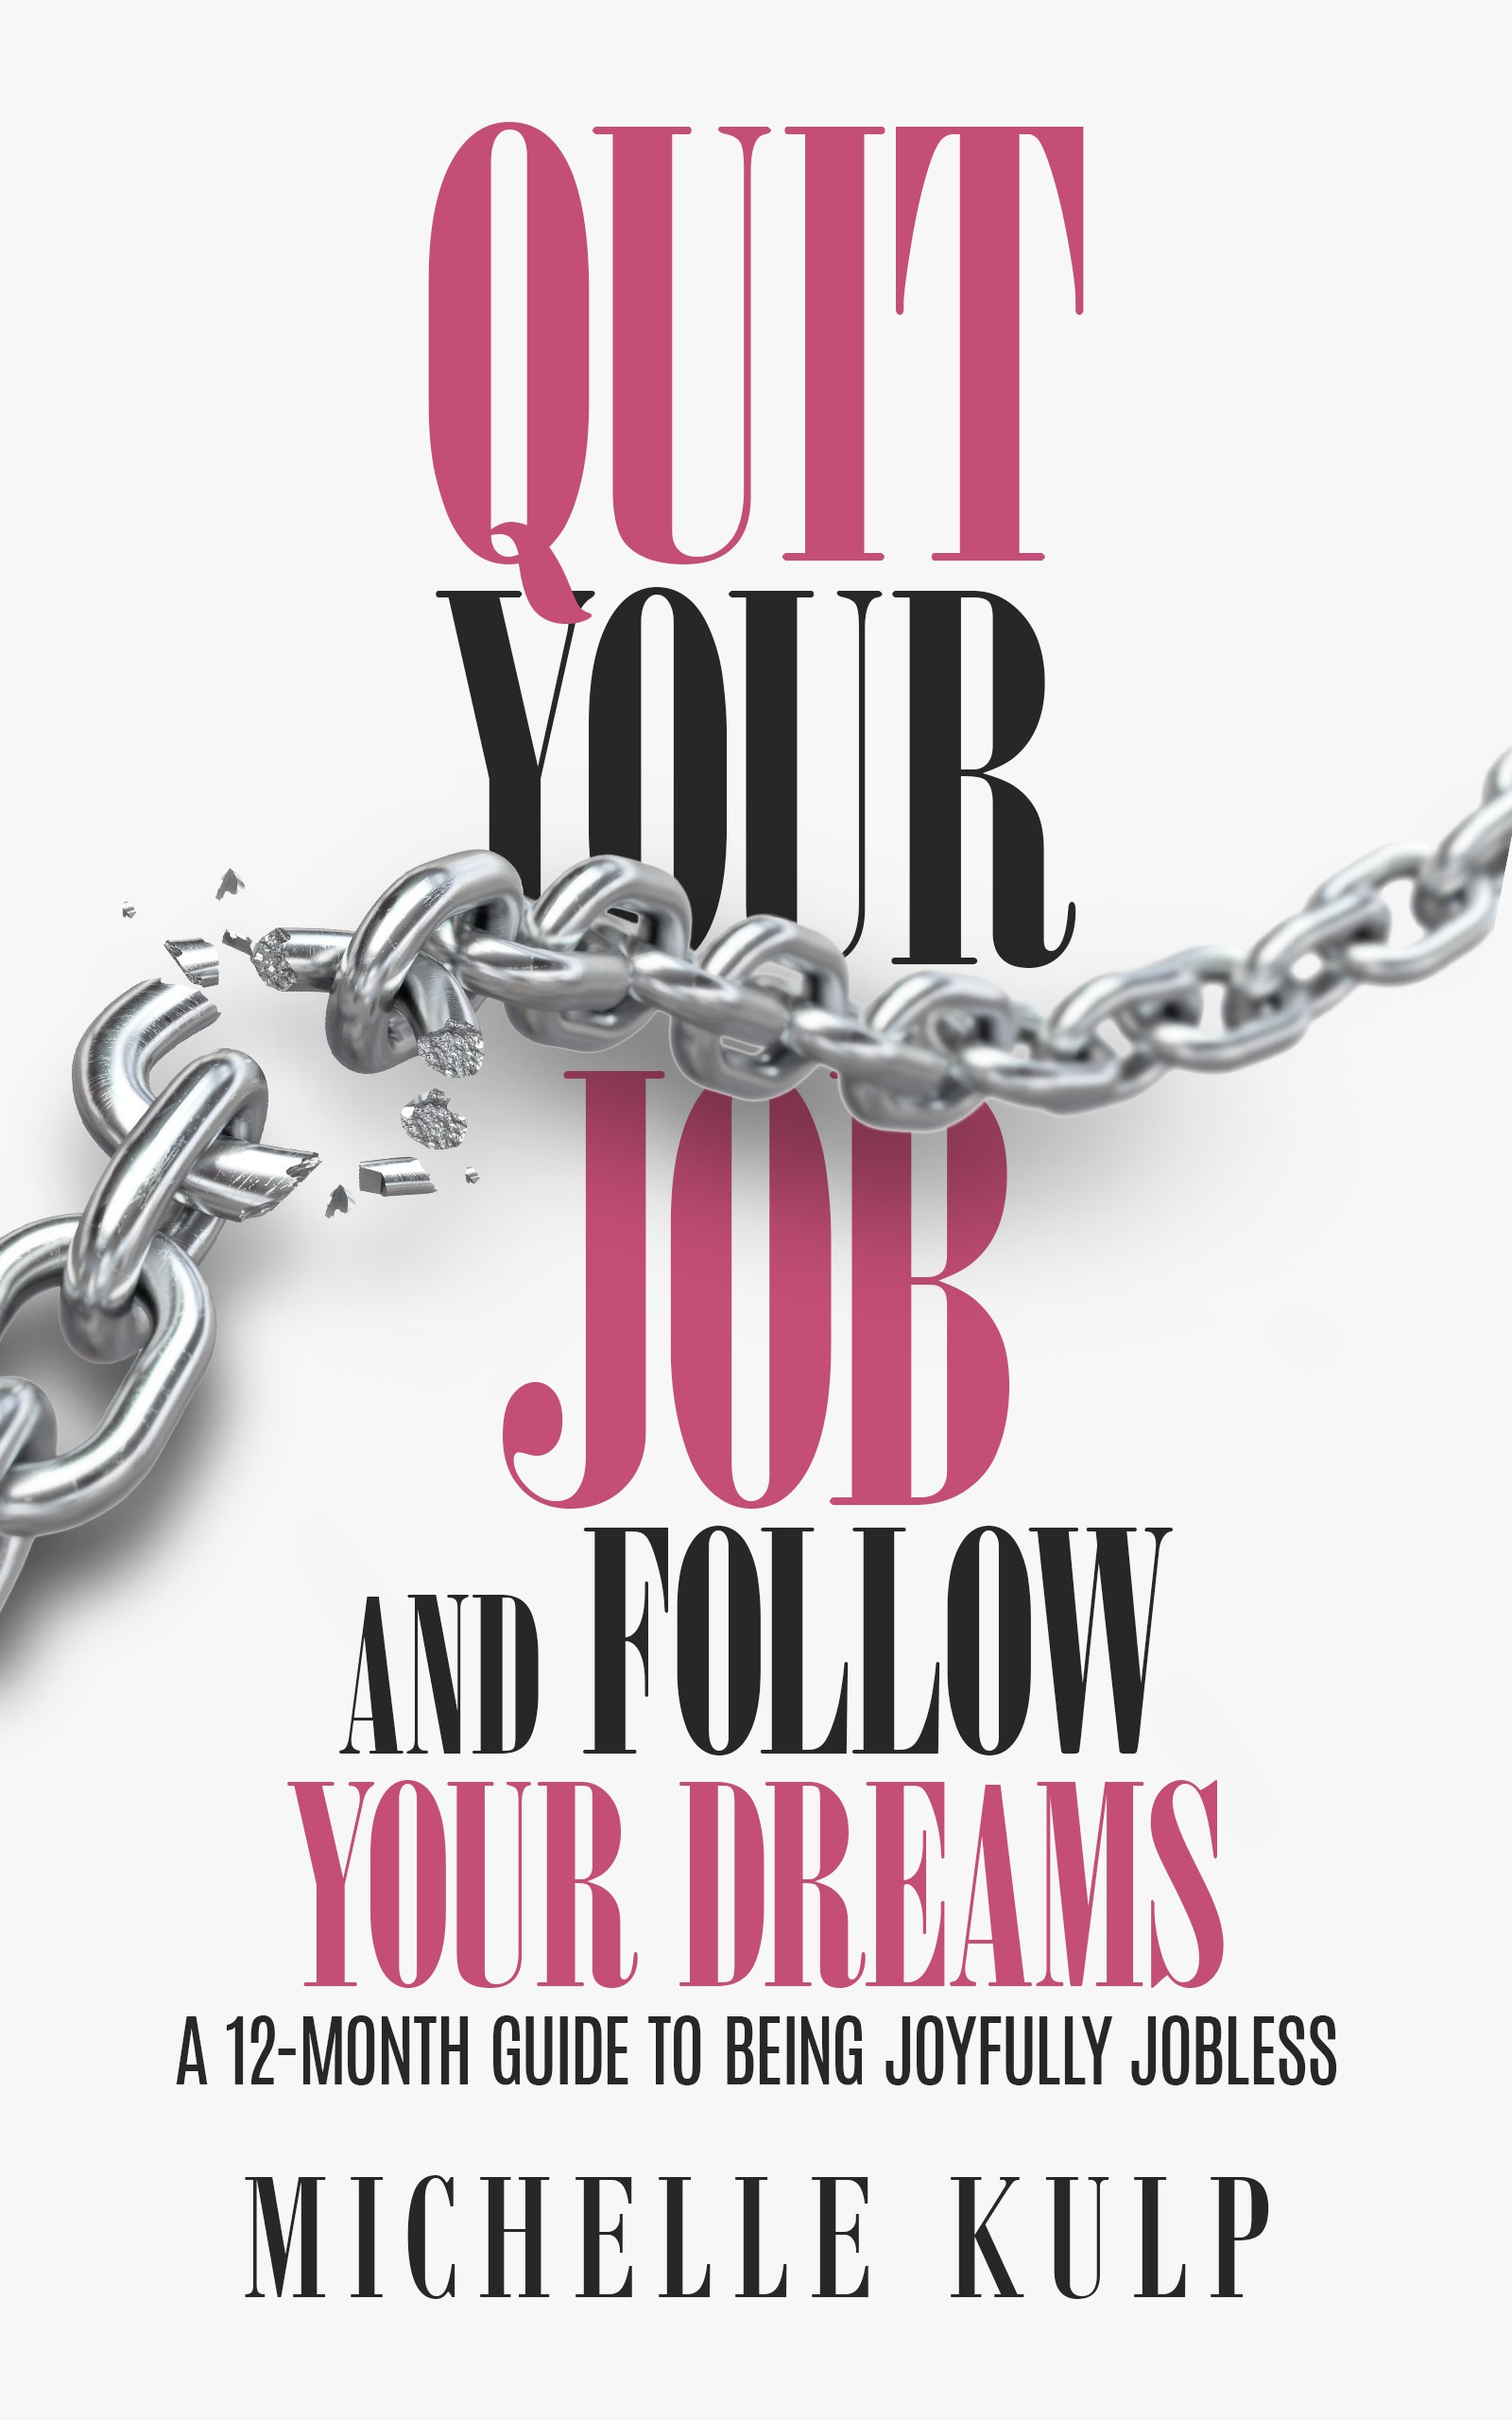 Design a beautiful cover for Quit Your Job and Follow Your Dreams book!